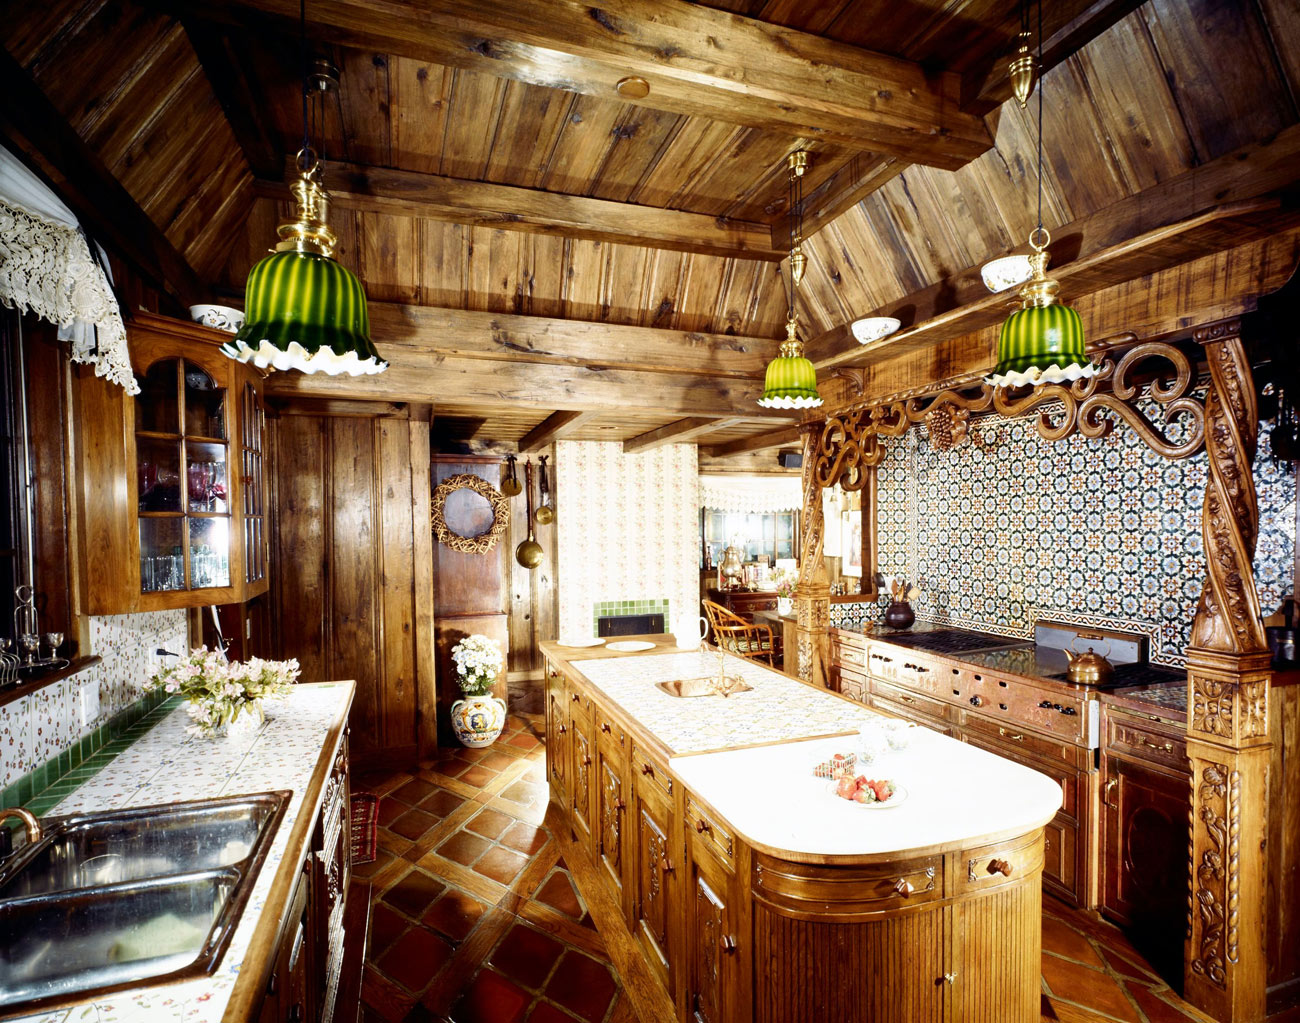 Kitchen with wood paneled walls and ceiling.